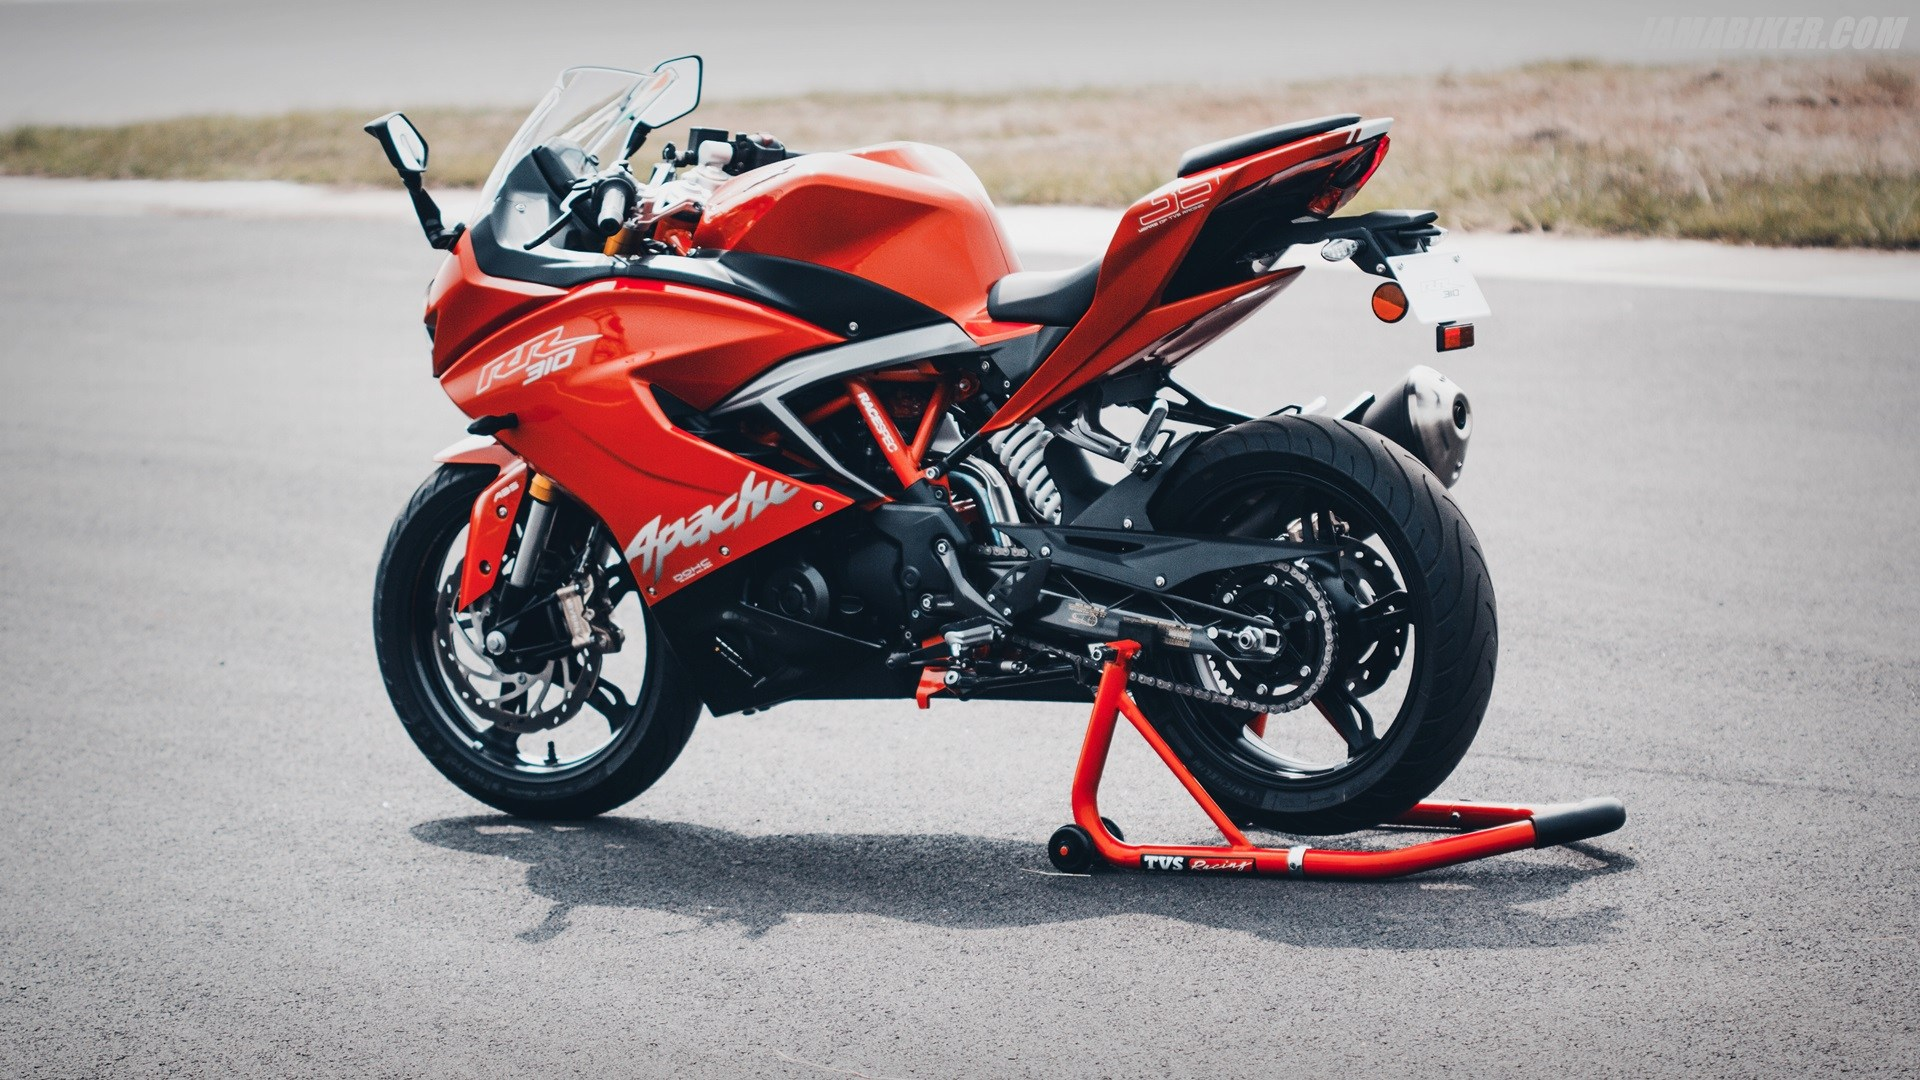 TVS Apache RR 310 HD wallpapers IAMABIKER   Everything Motorcycle 1920x1080